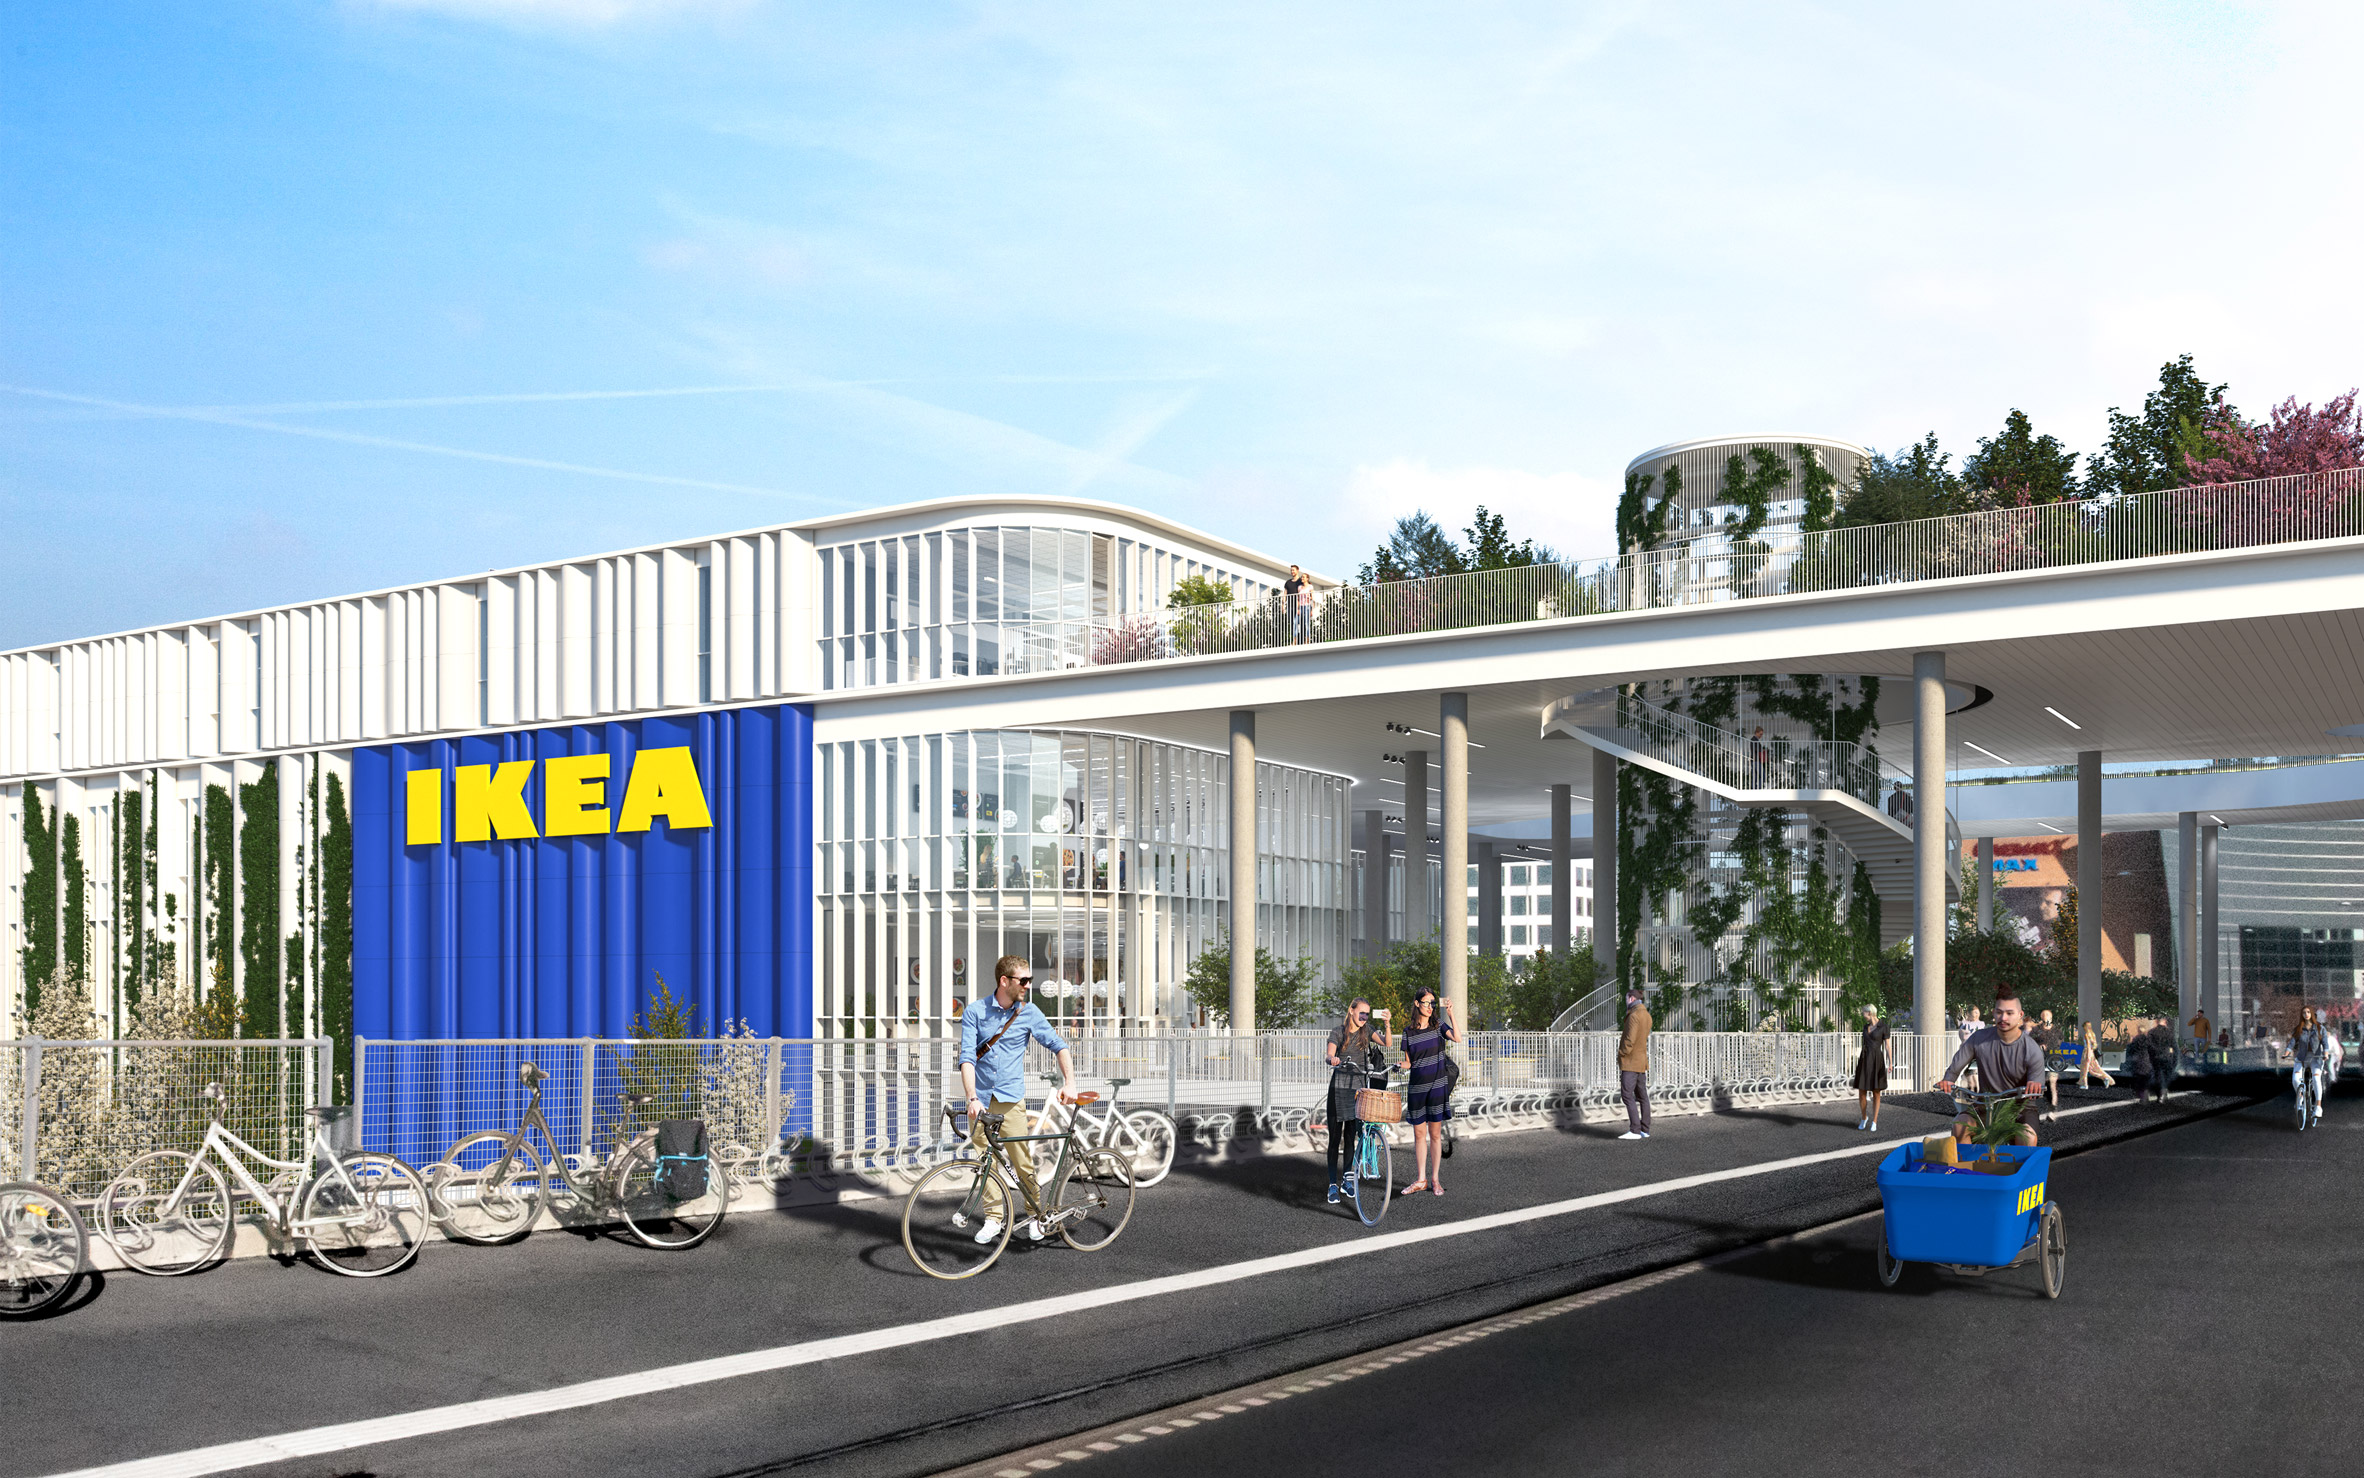 A visual of a city-centre IKEA store